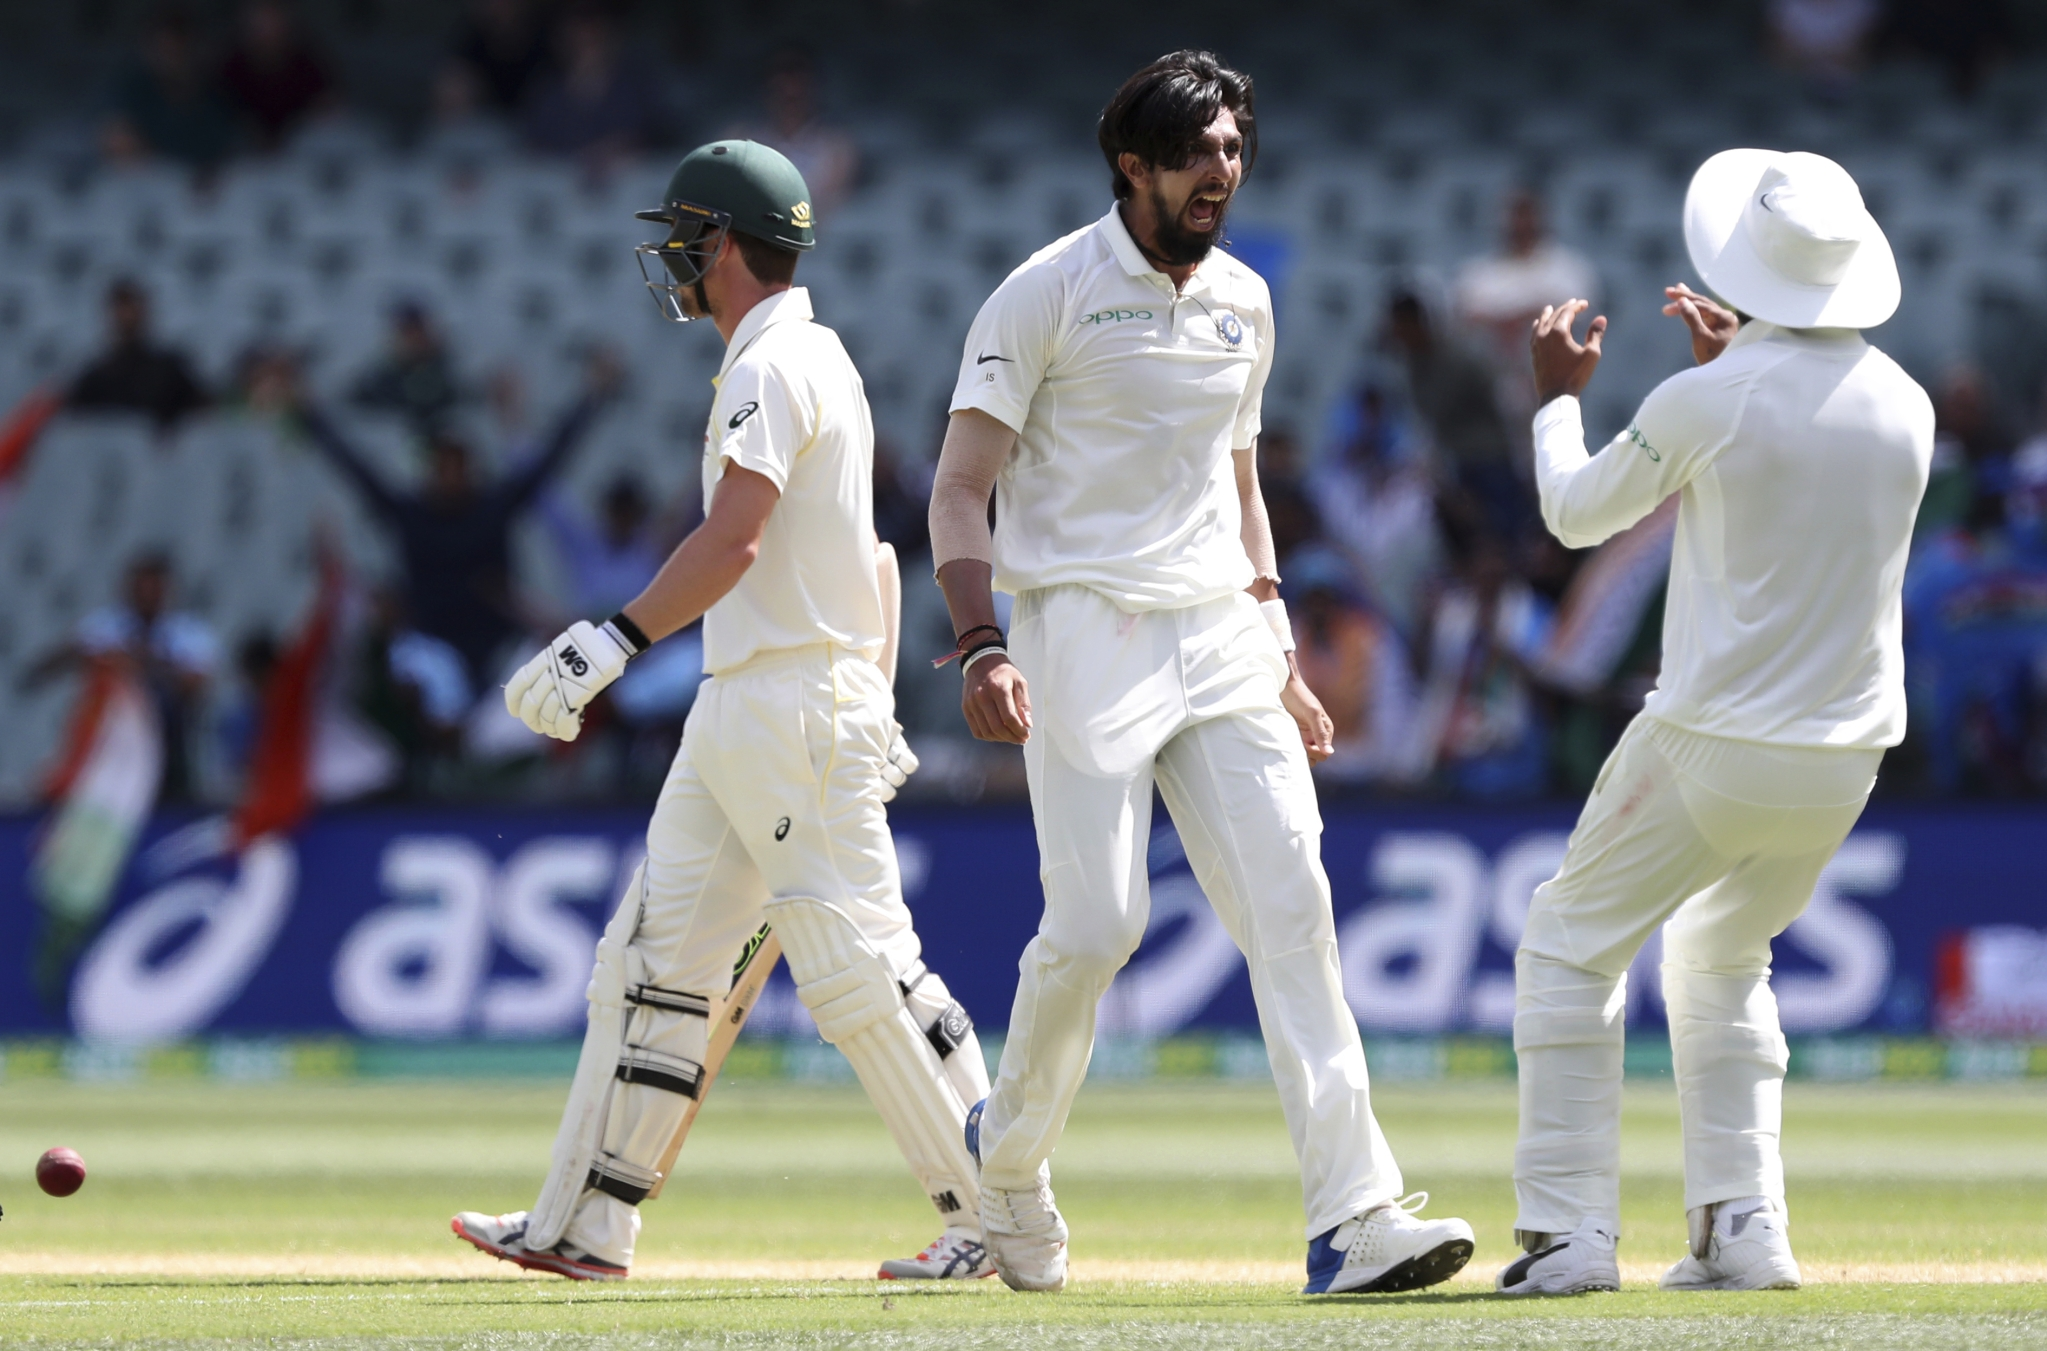 Ishant Sharma broke through with a sharp bouncer hitting the shoulder of Head's bat and getting an edge to gully